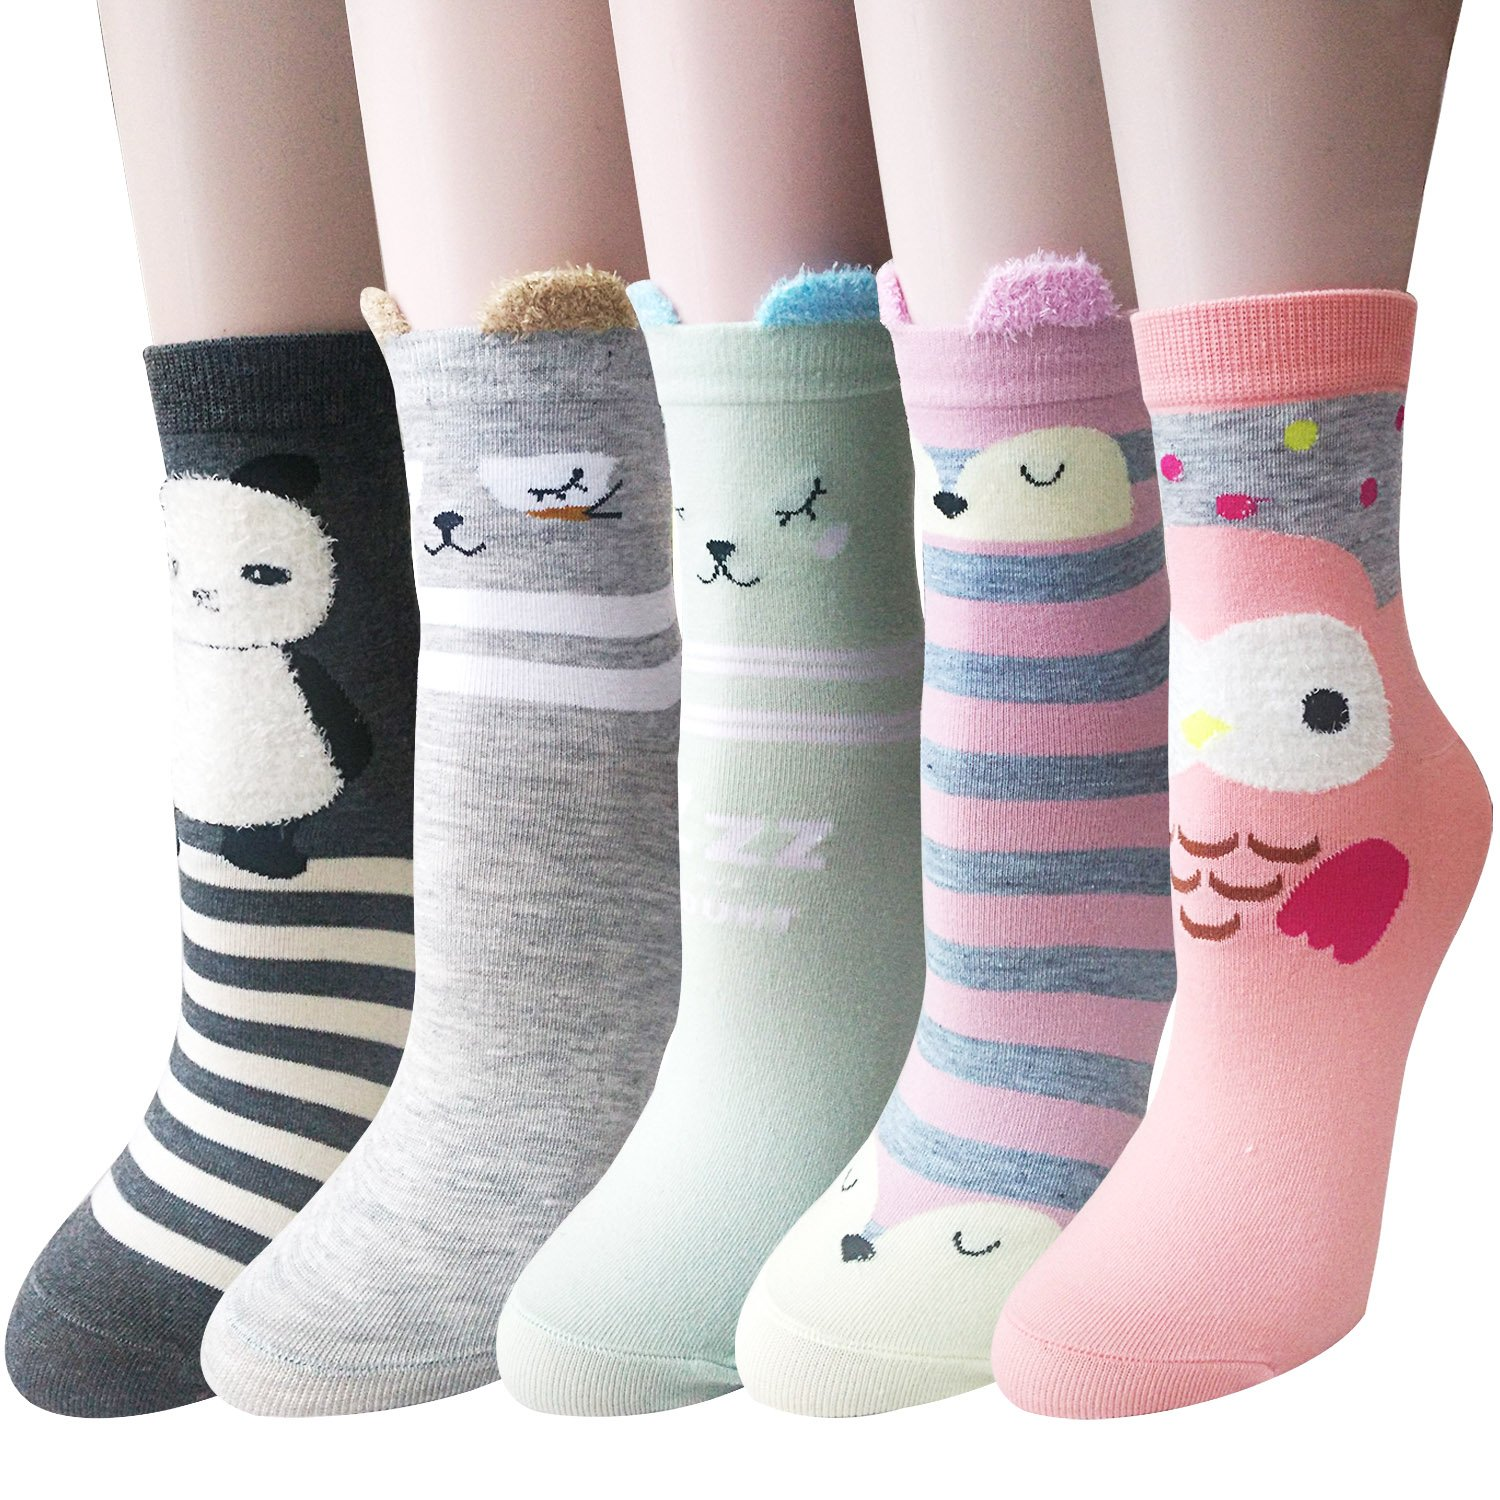 YSense 4-5 Pairs Womens Cute Funny Socks Casual Cotton Crew Animal Socks B01NBH227L